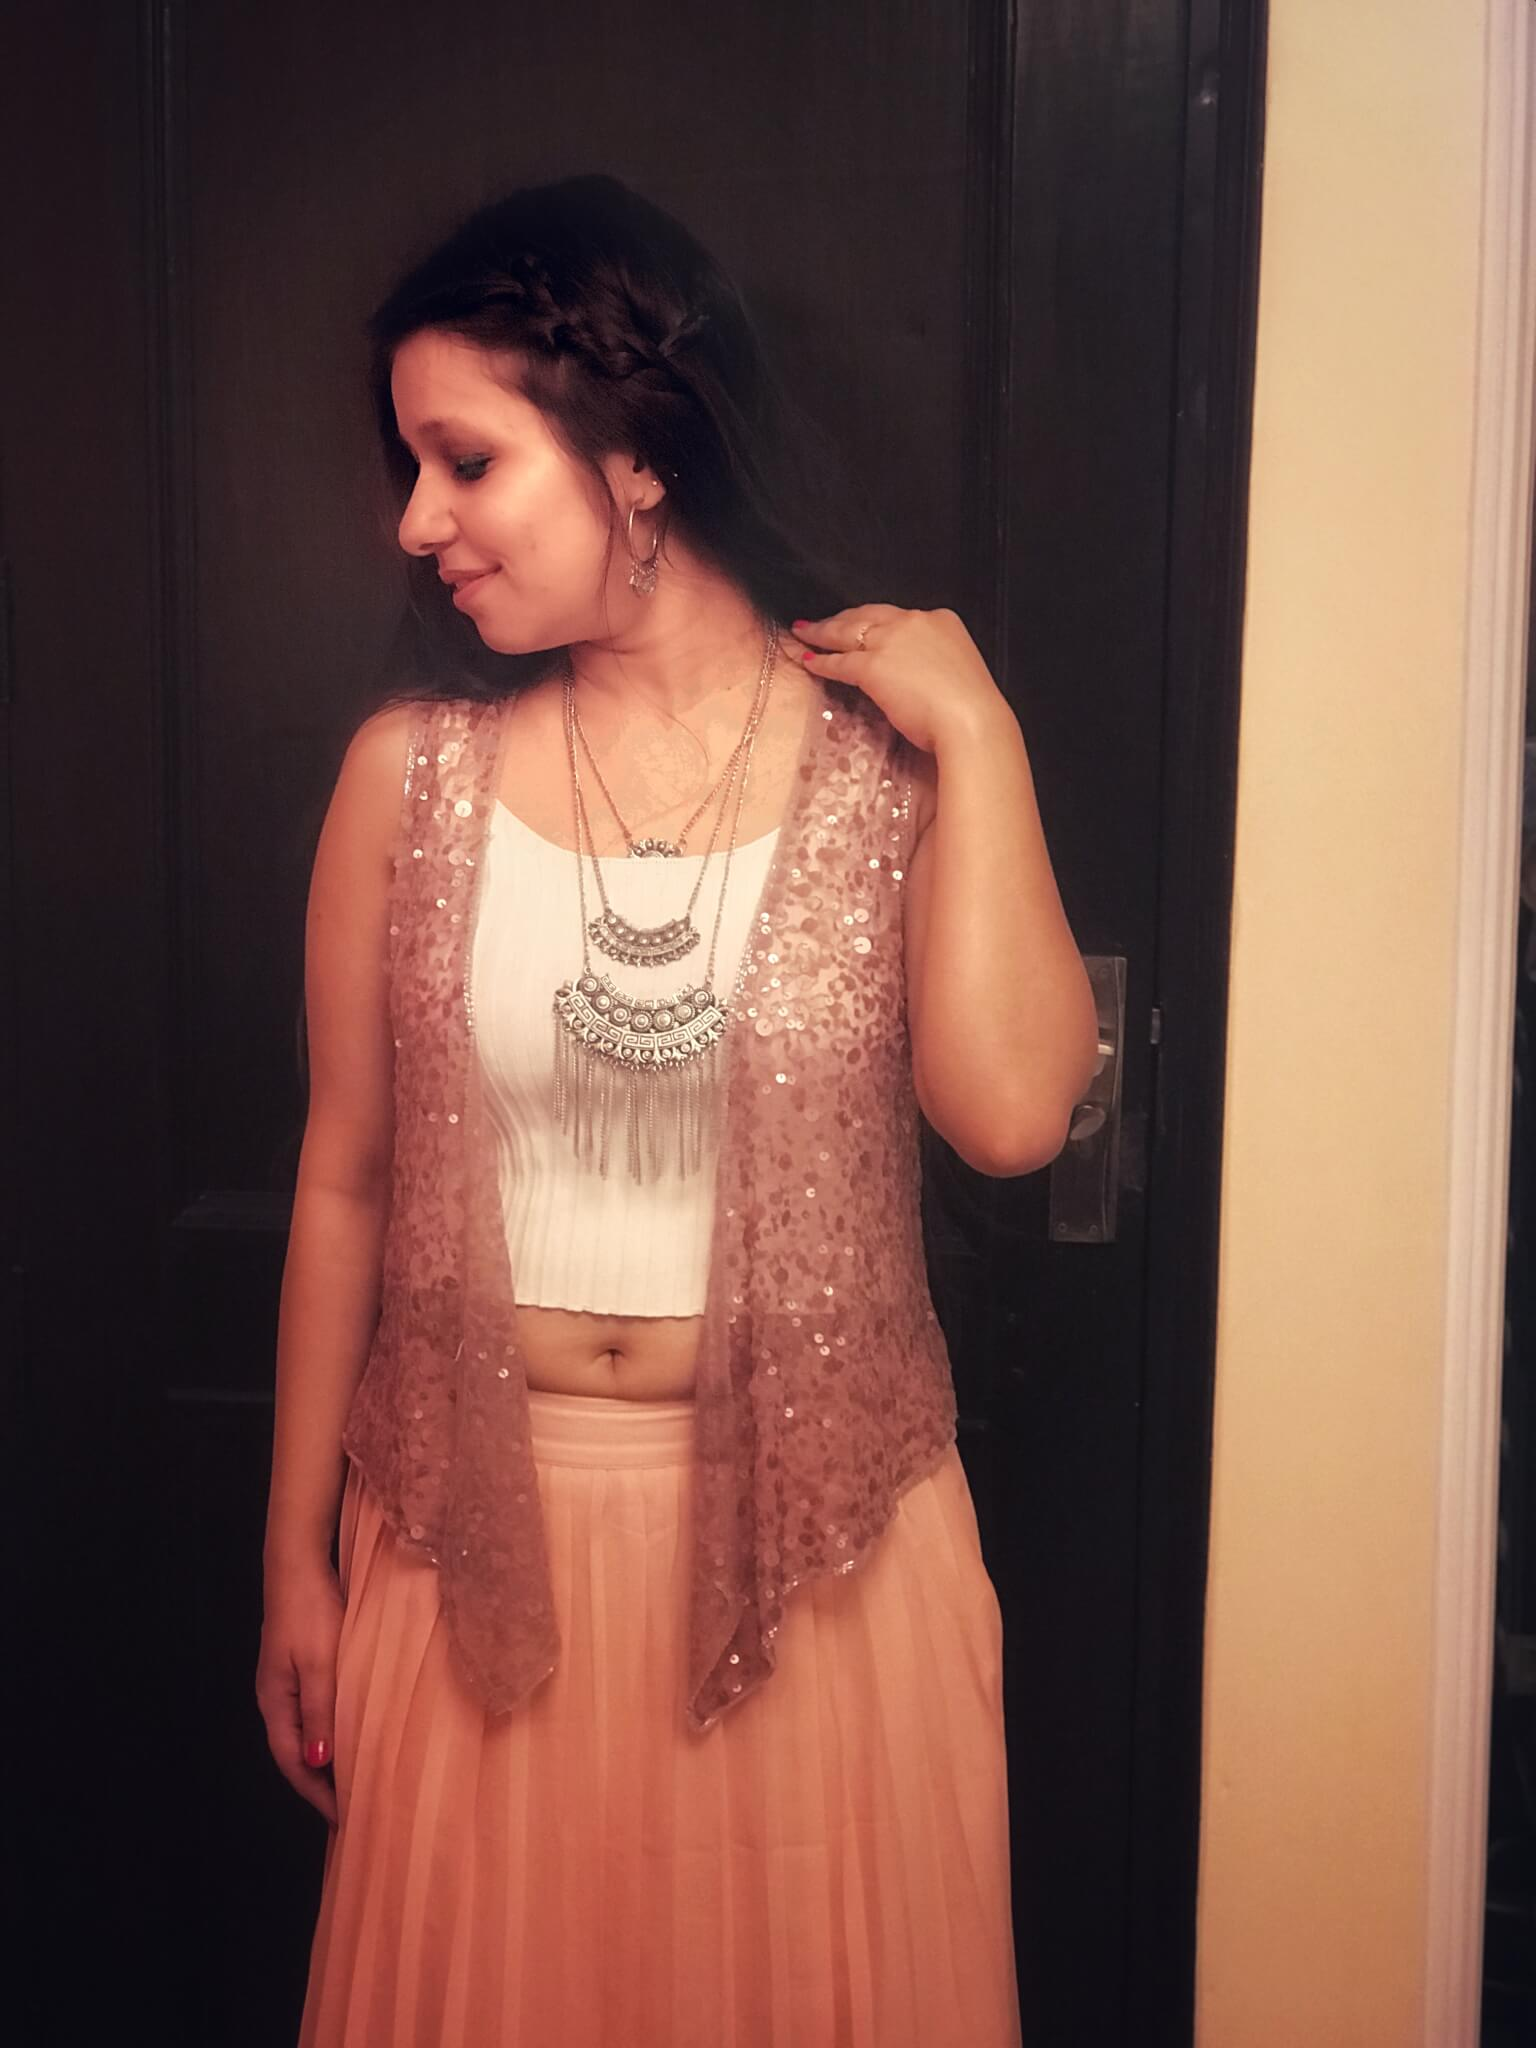 A top and a sequin jacket with a skirt (Indo-western look)